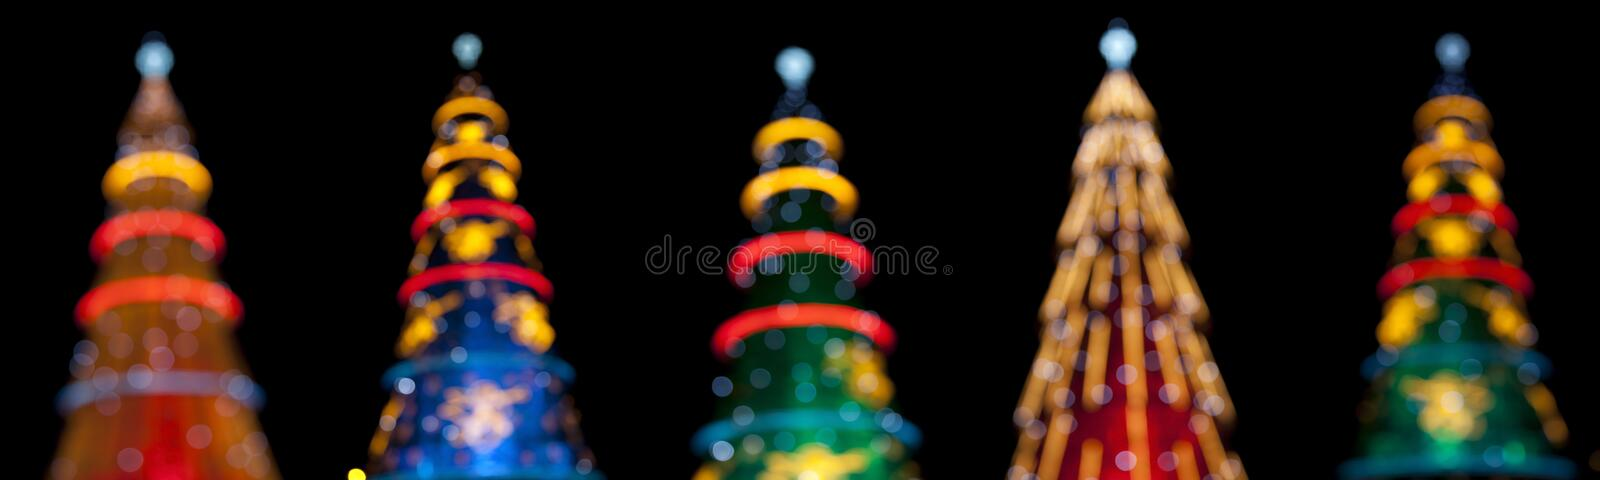 Download Five Christmas Tree In The Night Stock Photography - Image: 16847042